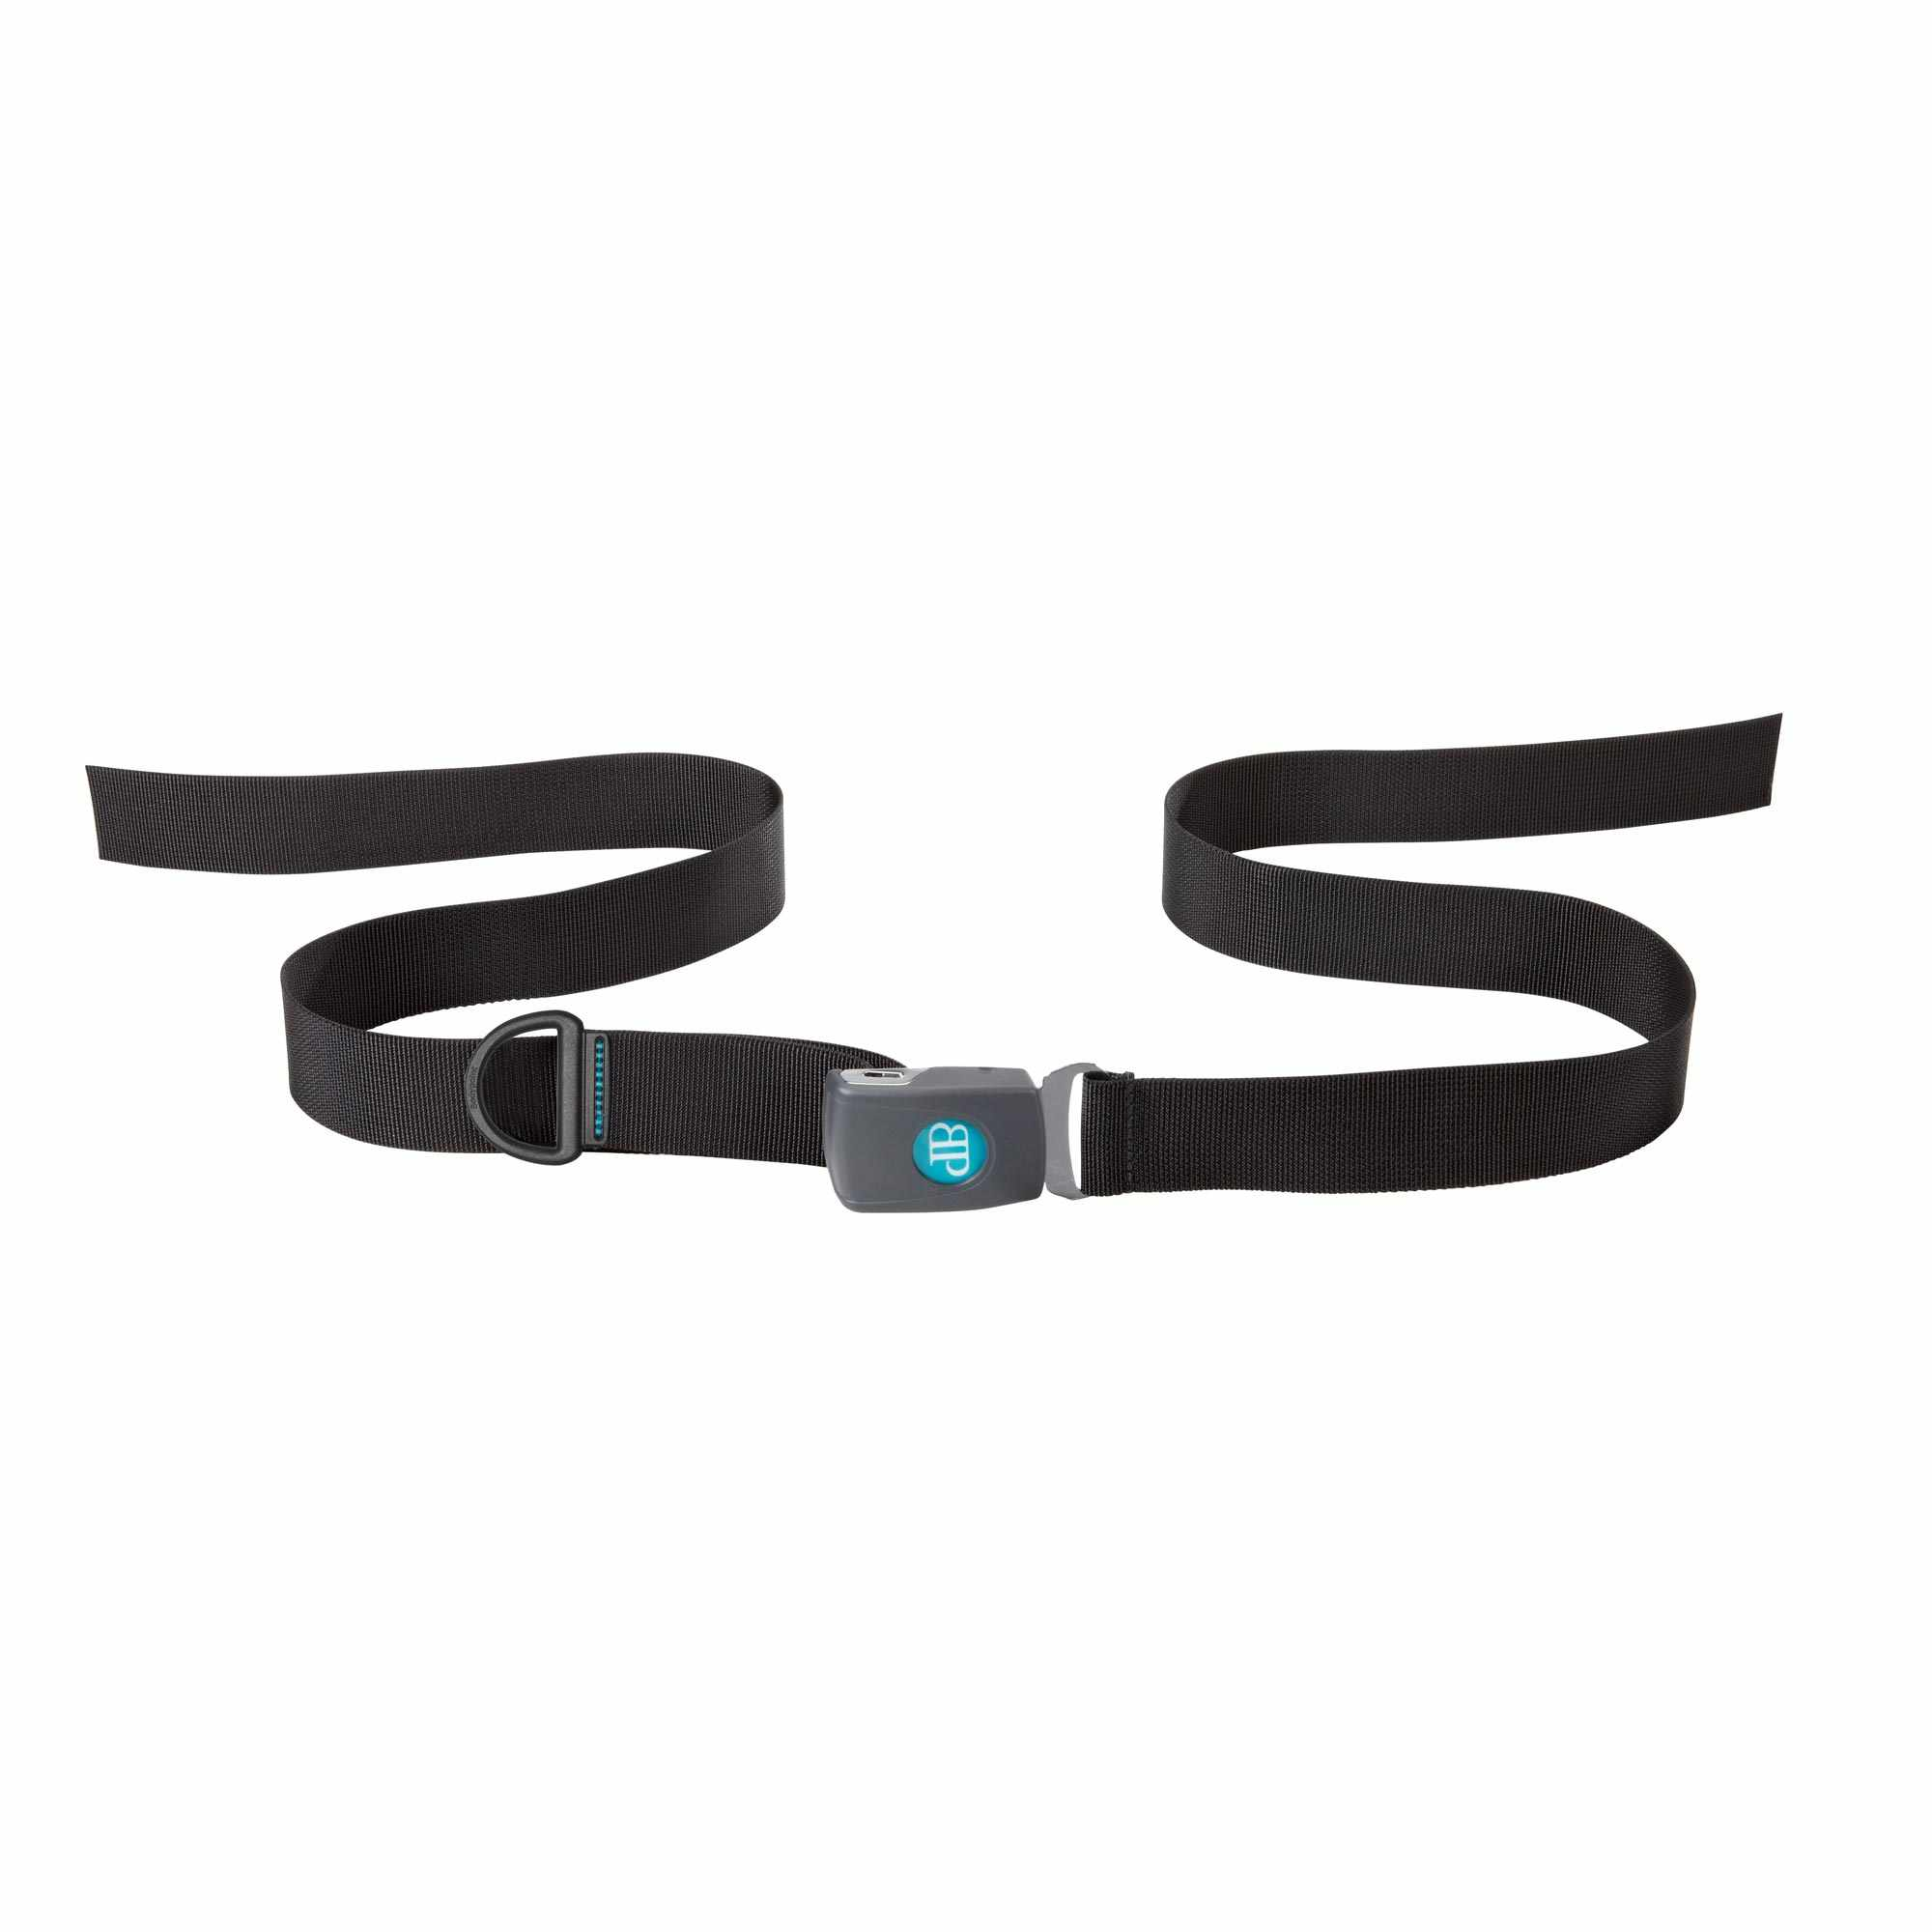 Bodypoint center-pull two point non-padded hip belt with push button buckle